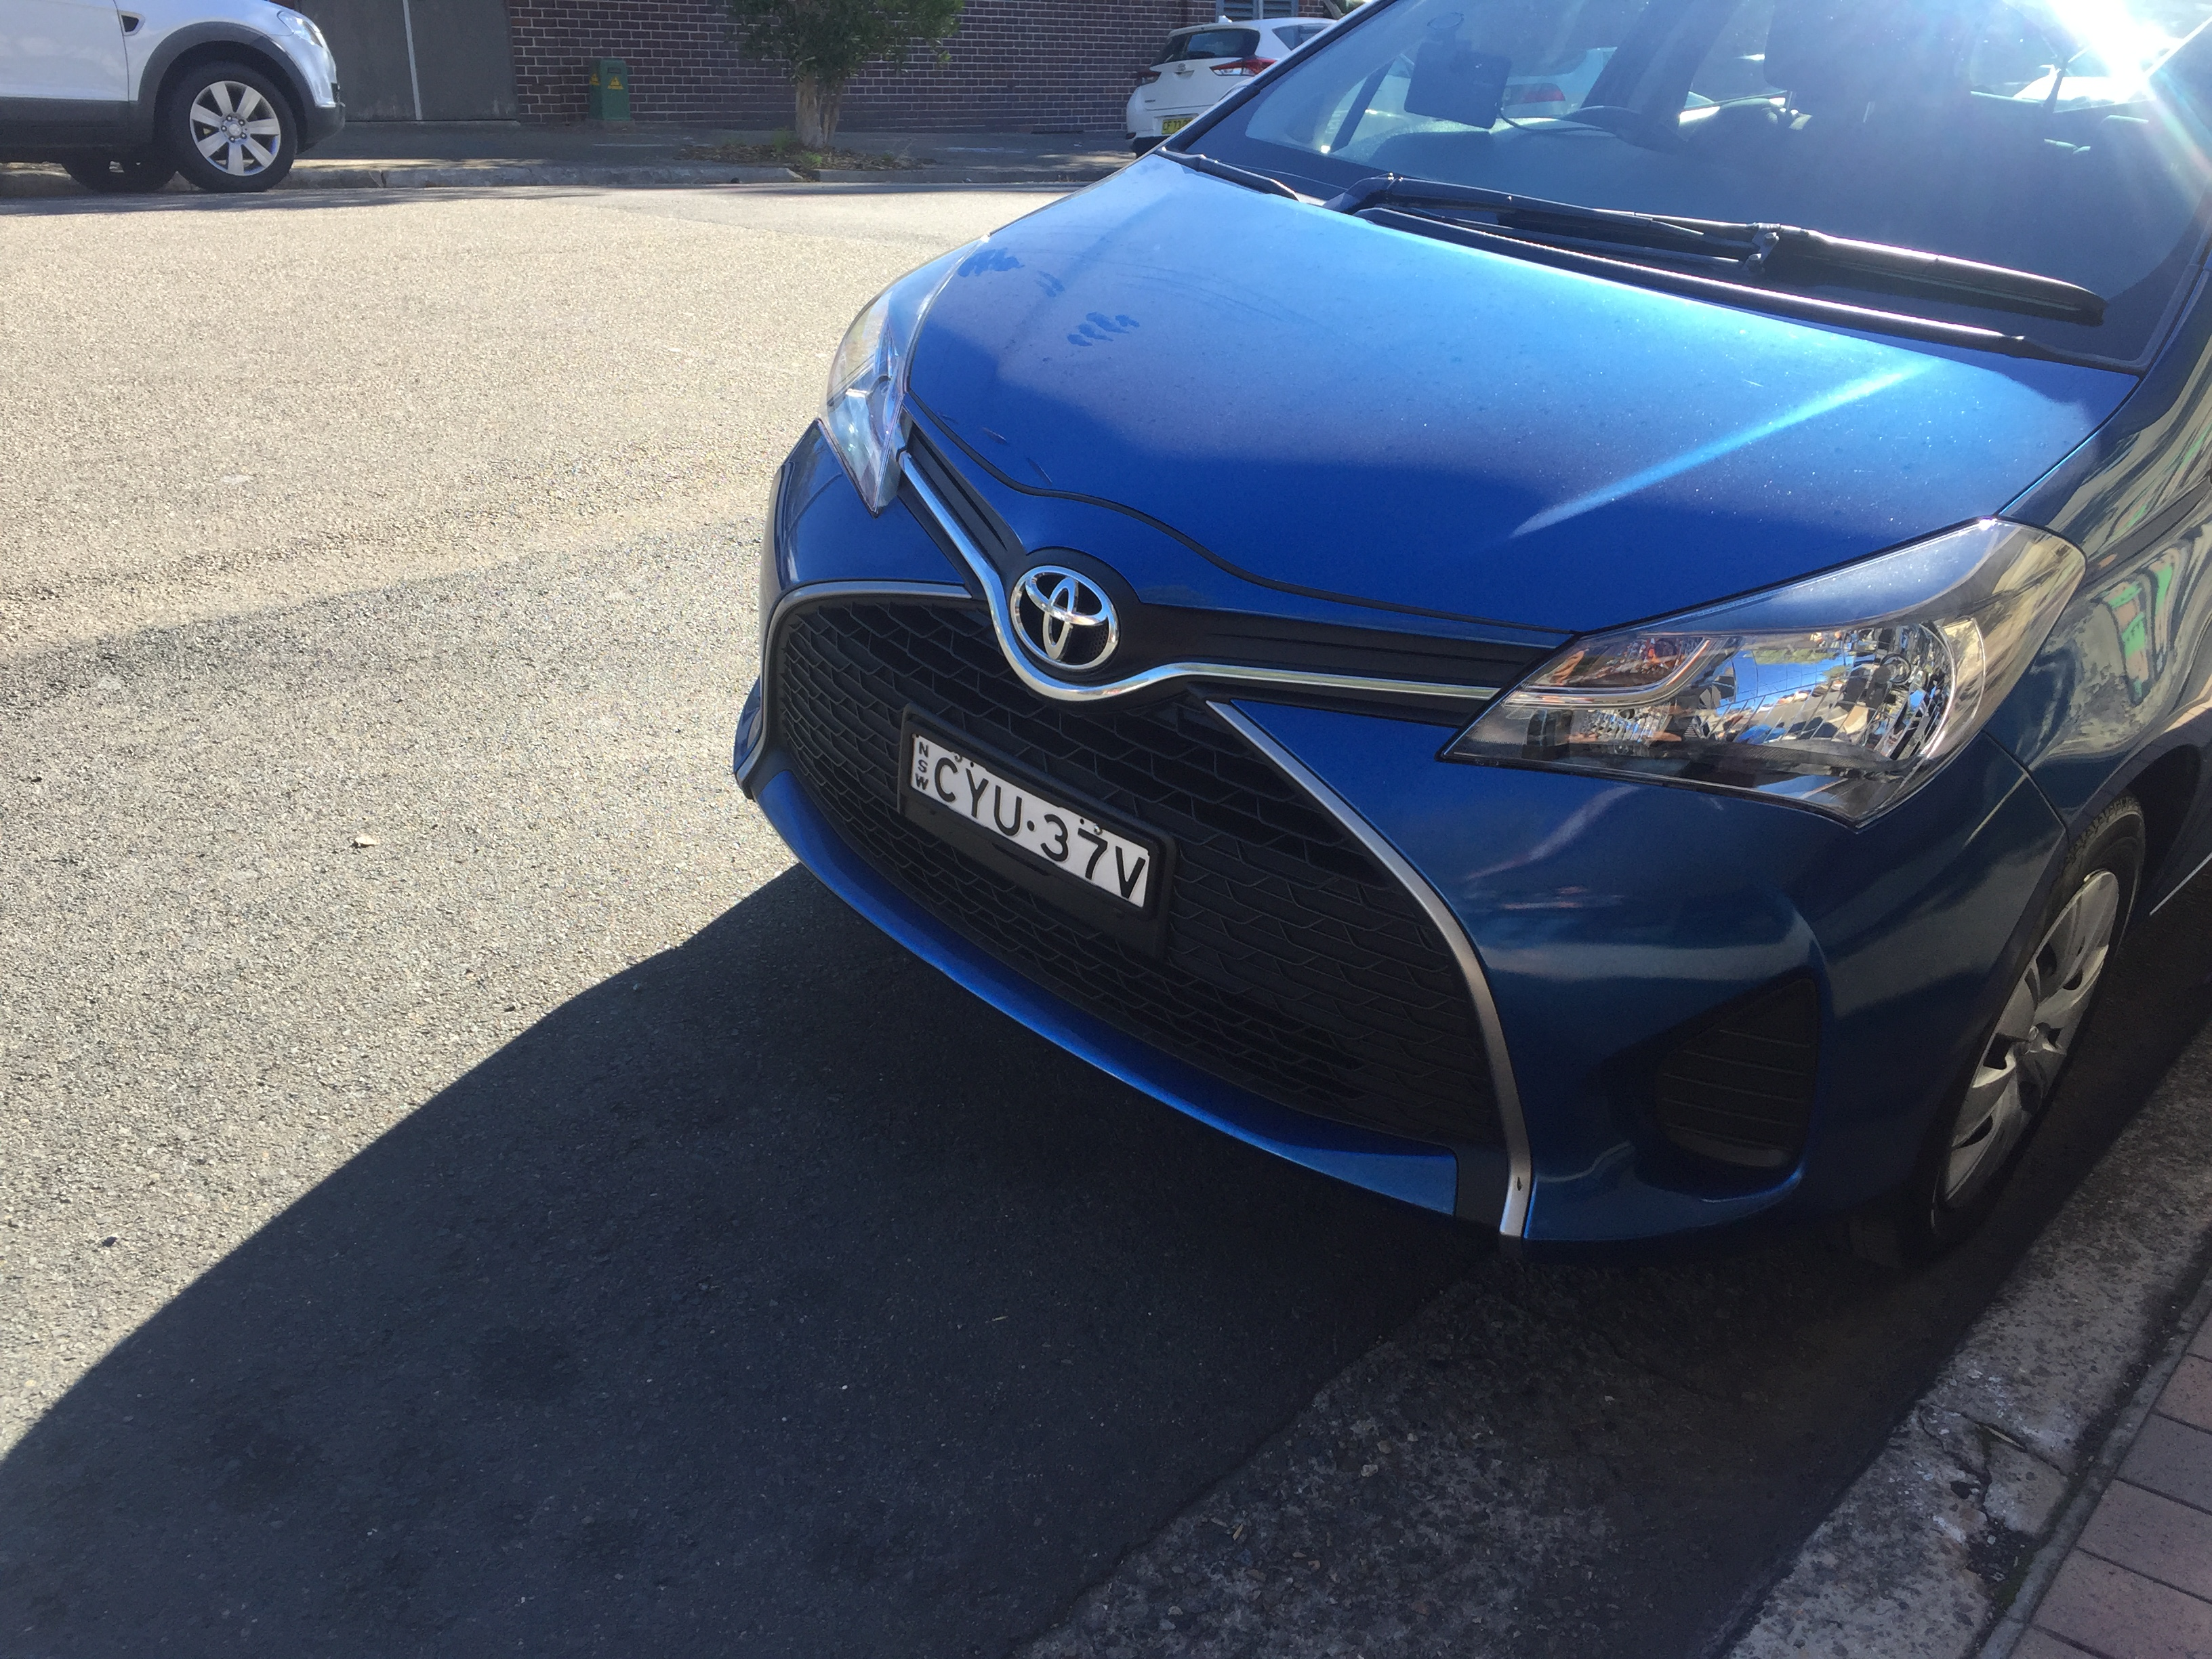 Picture of Muneer's 2015 Toyota Yaris